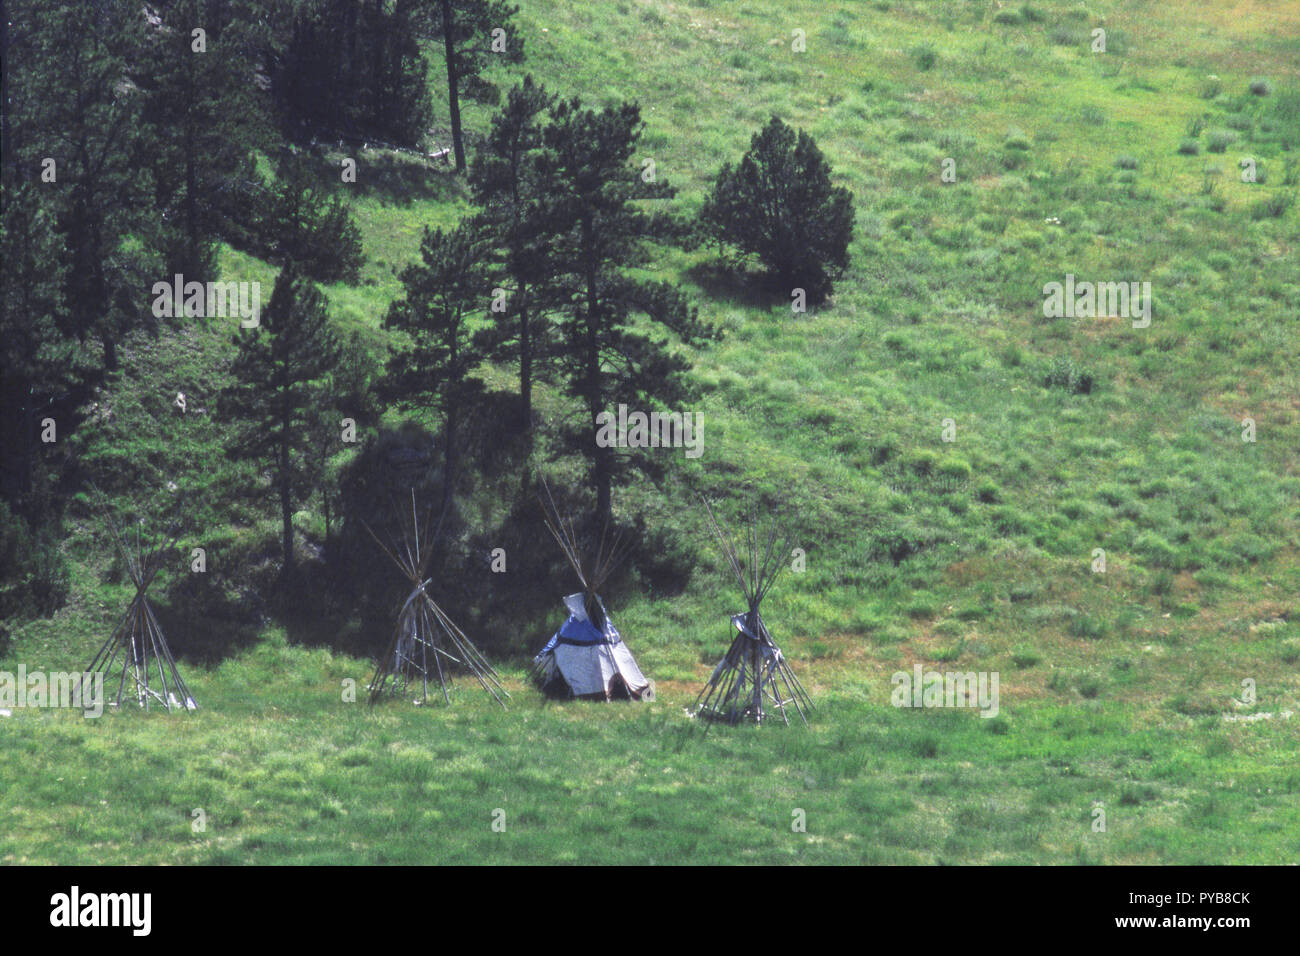 """Sioux tipi and frames on the Cheyenne River, Black Hills, South Dakota, used in movie """"Crazy Horse."""" Photograph Stock Photo"""